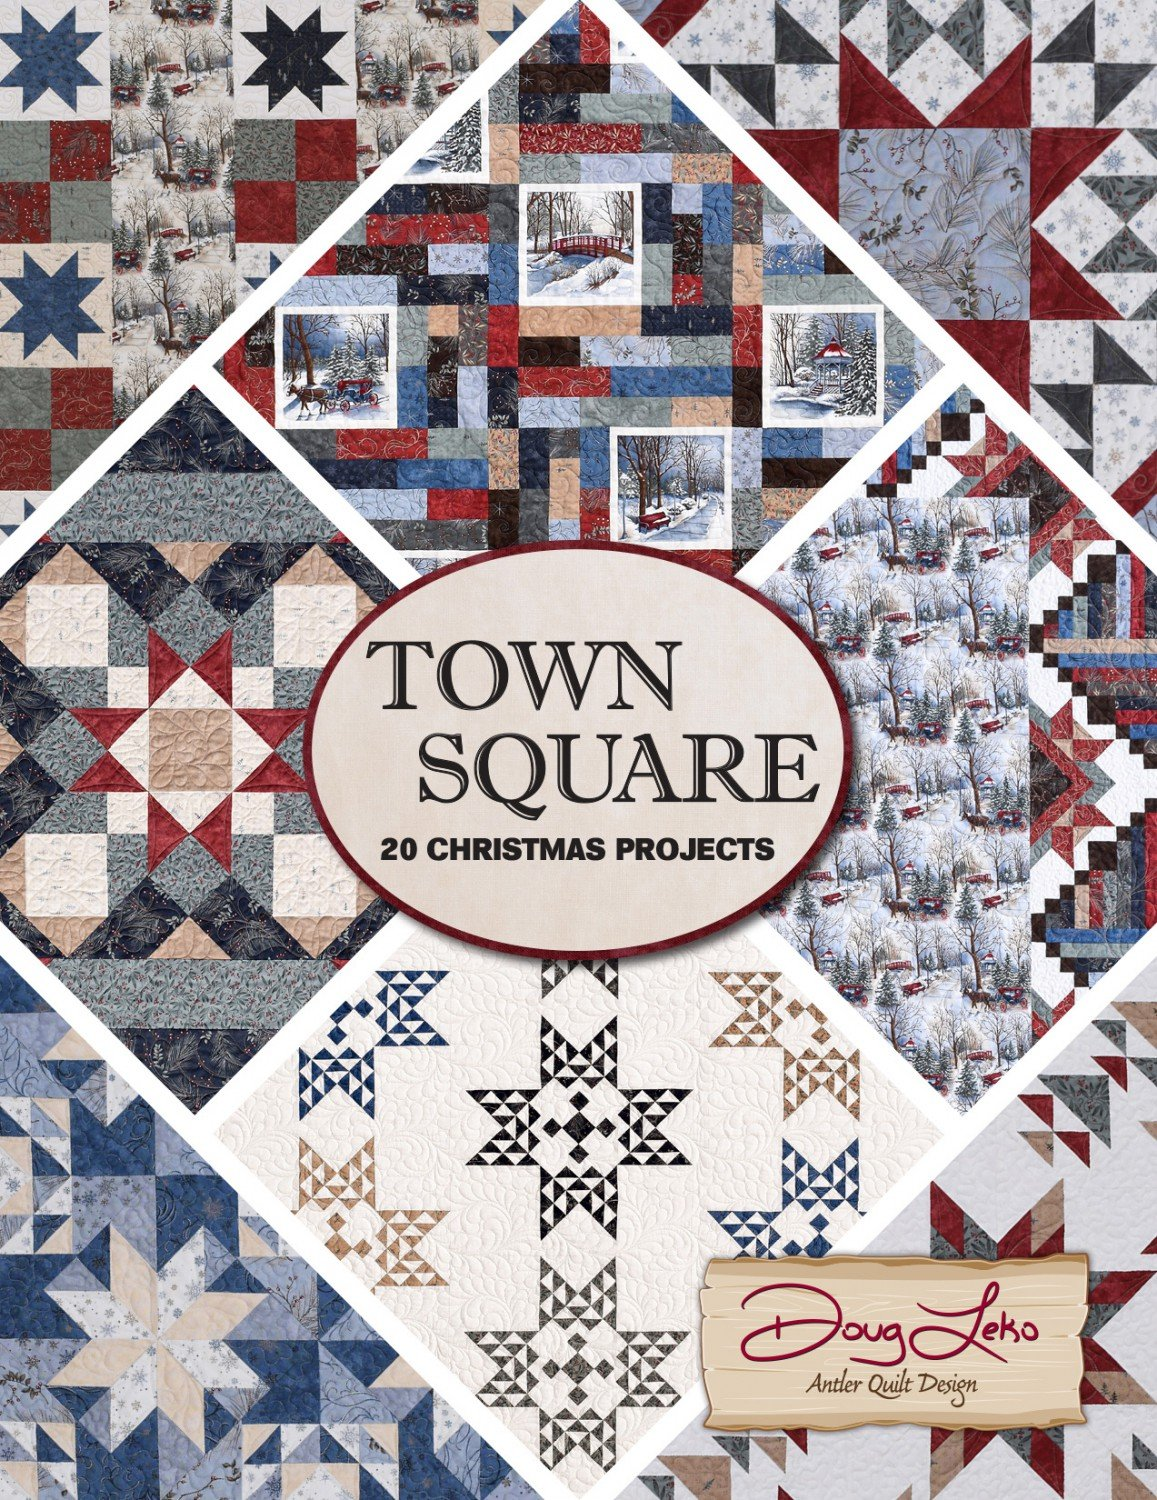 Square Christmas Projects Patterns Design product image